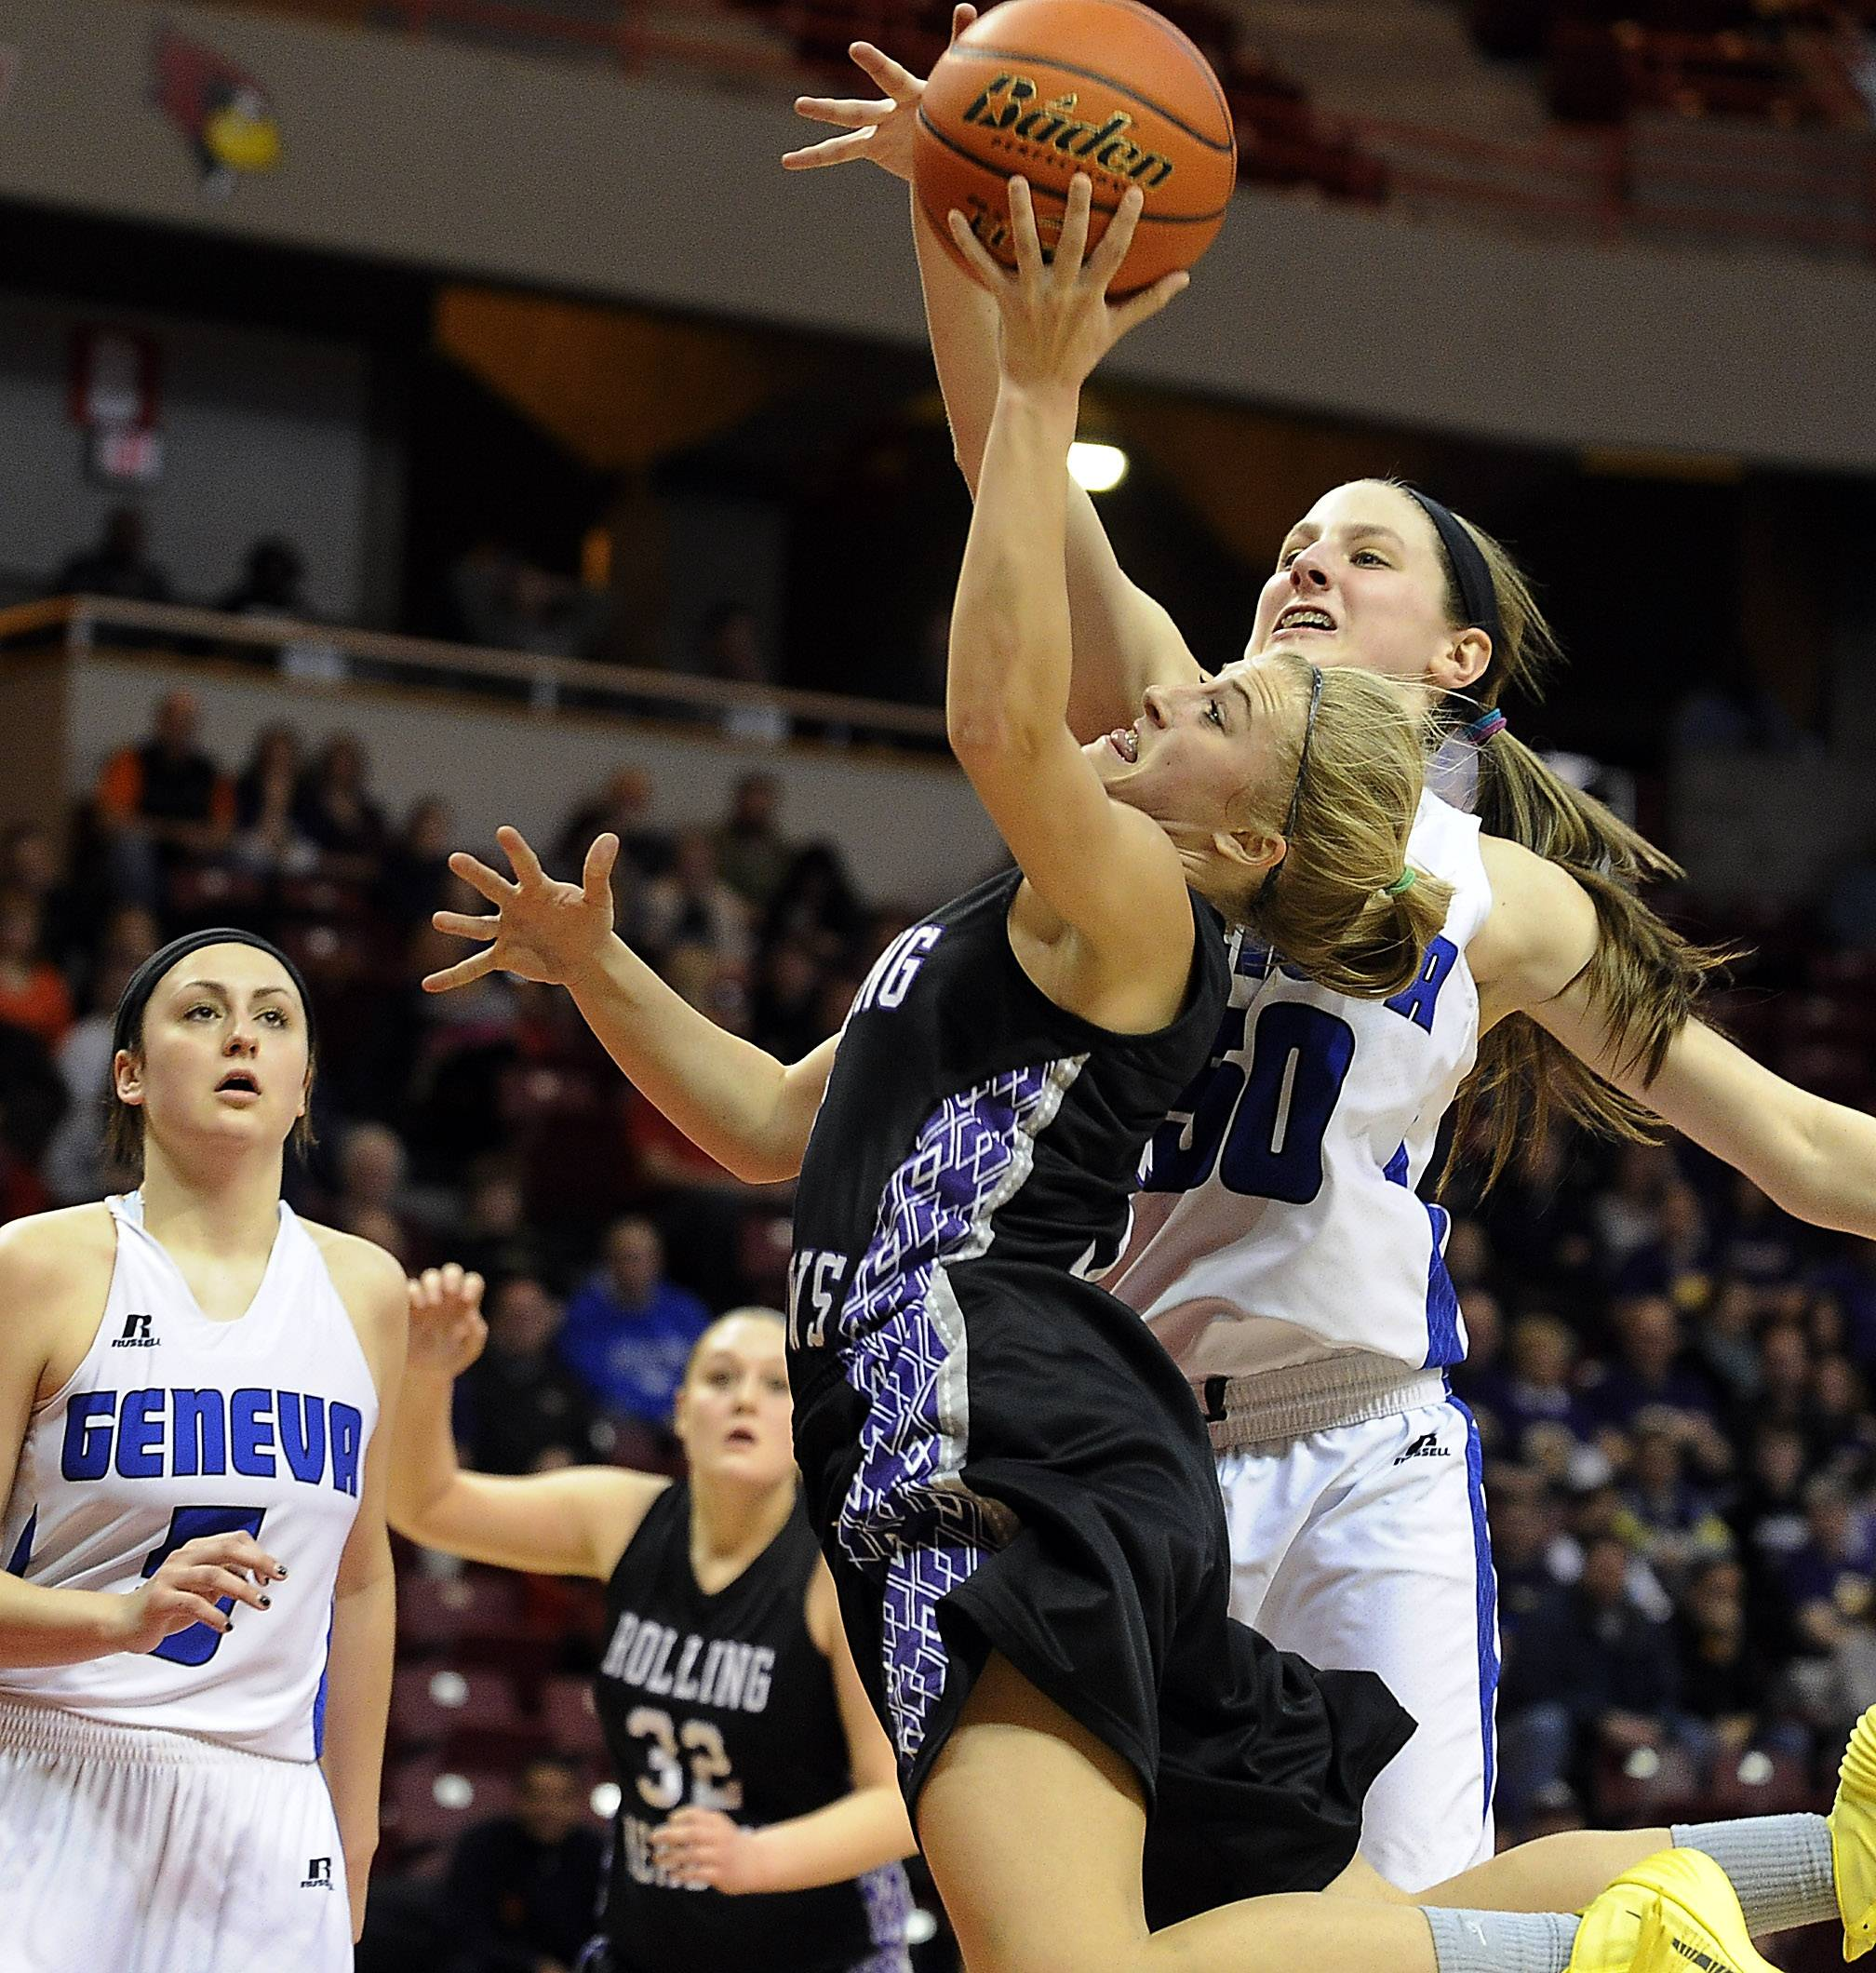 Rolling Meadows' Jackie Kemph delivers to the basket but is blocked by Geneva's Grace Loberg during Friday's Class 4A semifinal game in Normal.